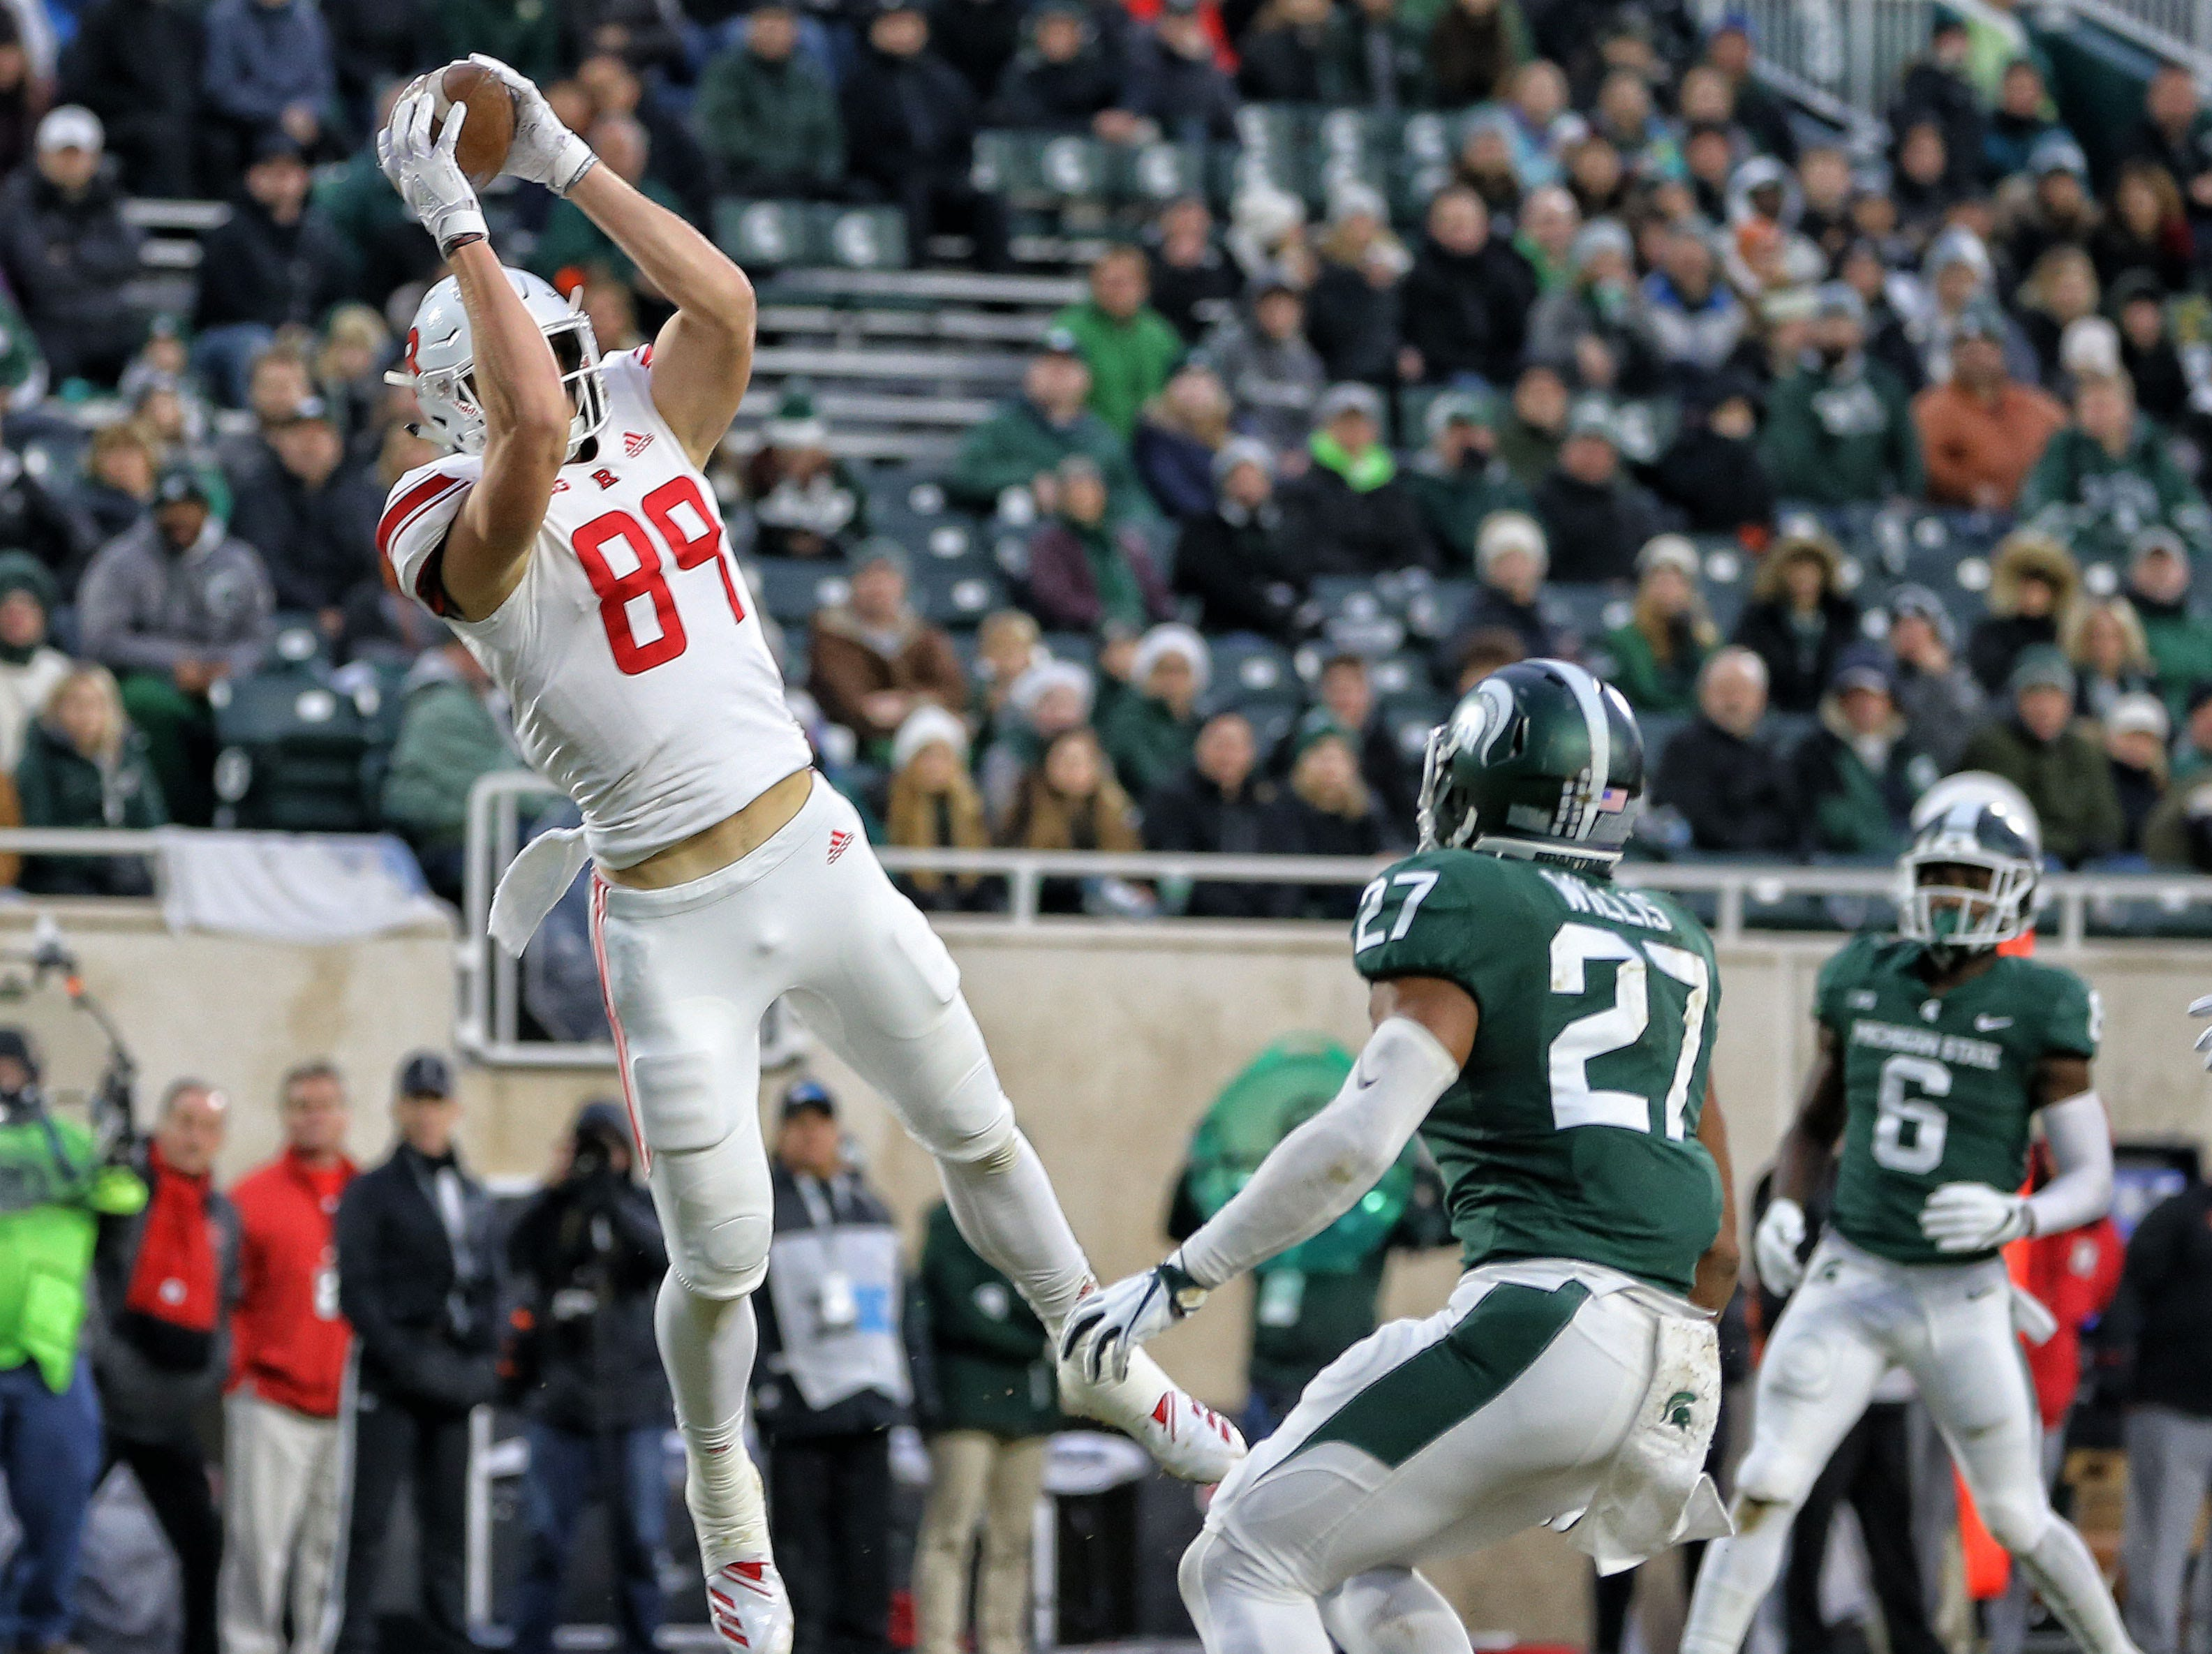 Nov 24, 2018; East Lansing, MI, USA; Rutgers Scarlet Knights tight end Travis Vokolek (89) makes a touchdown catch against the Michigan State Spartans during the first quarter of a game at Spartan Stadium. Mandatory Credit: Mike Carter-USA TODAY Sports